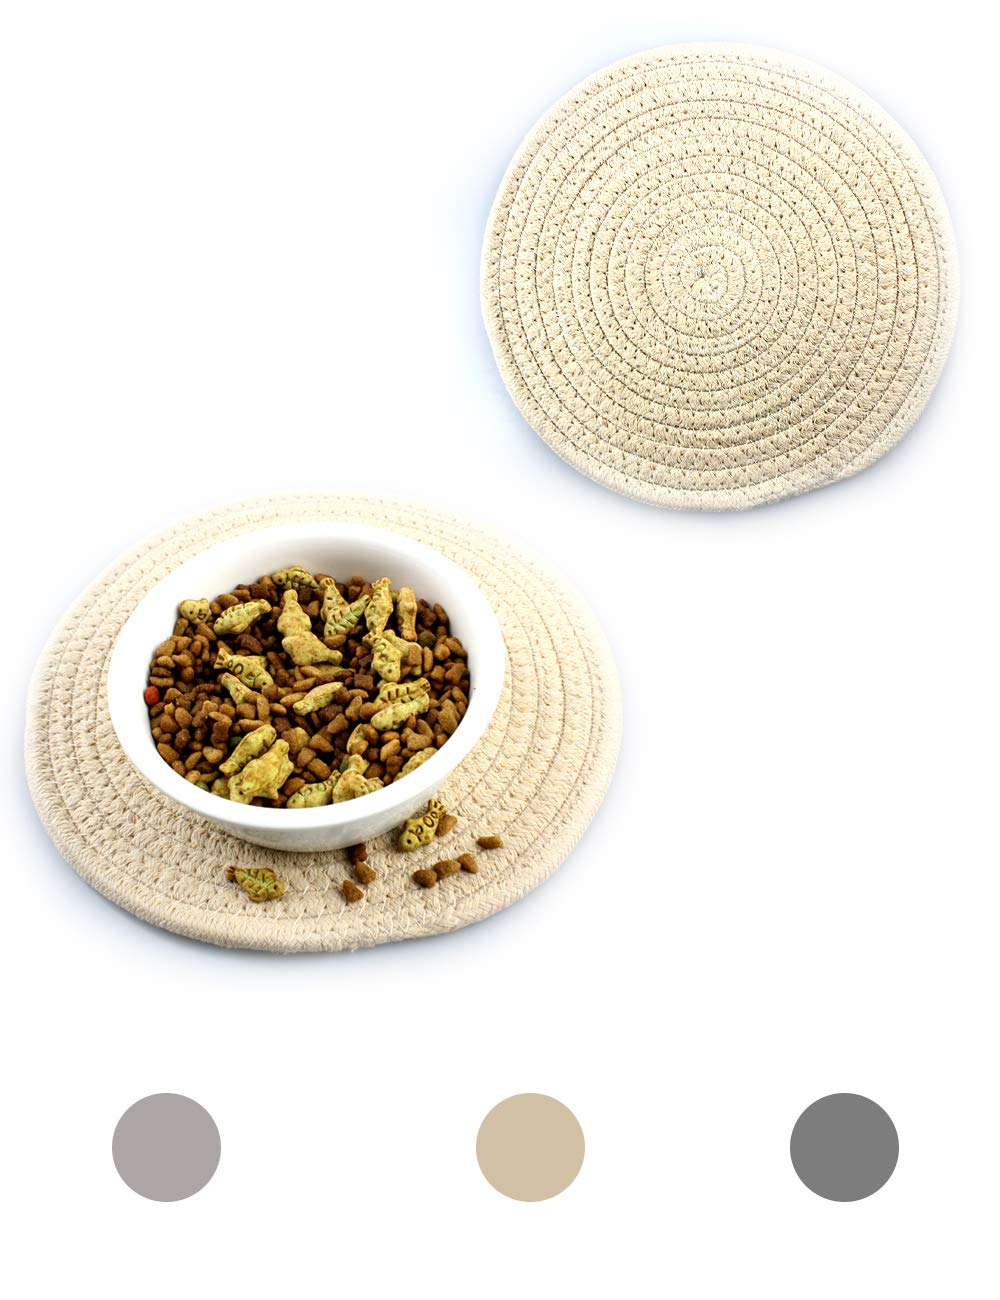 """Ptlom Dog and Cat Medium and Small Placemat, Pet Food and Water Mat Suitable for Medium and Small Pets, Prevent Water and Food from Spilling, Cotton, 9.5"""" 9.5"""", Khaki"""